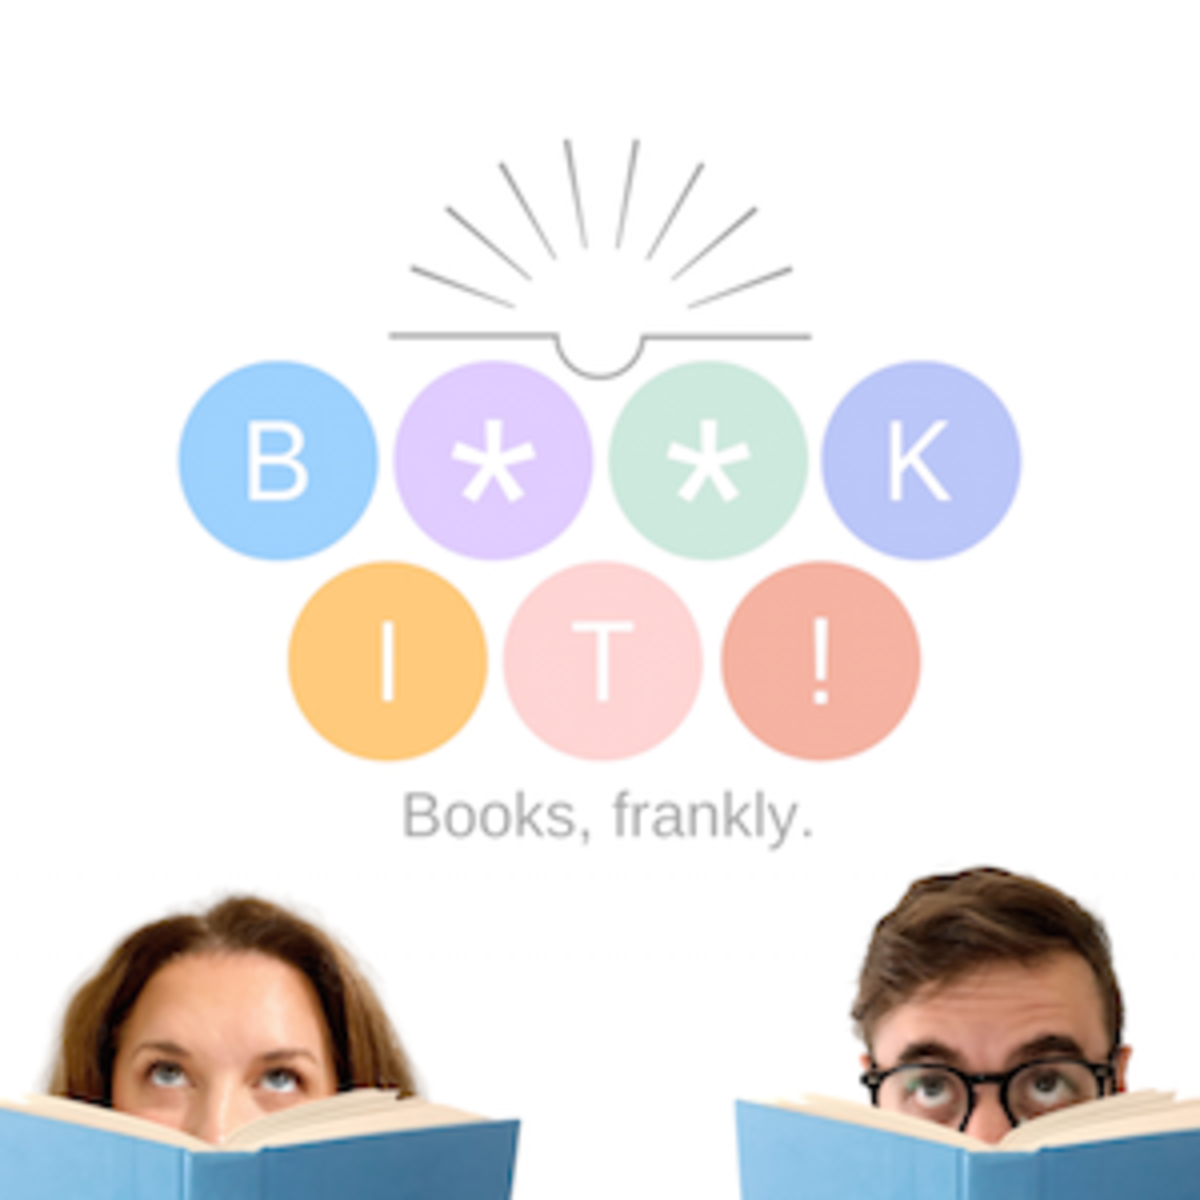 Learn more about A Million Reasons Why in this conversation with Jessica Strawser on the Book It! podcast hosted by Michael Woodson and Jill Burket Ragase. She talks about pressures of genre categorizations, POV, and, of course, book events in the era of COVID.